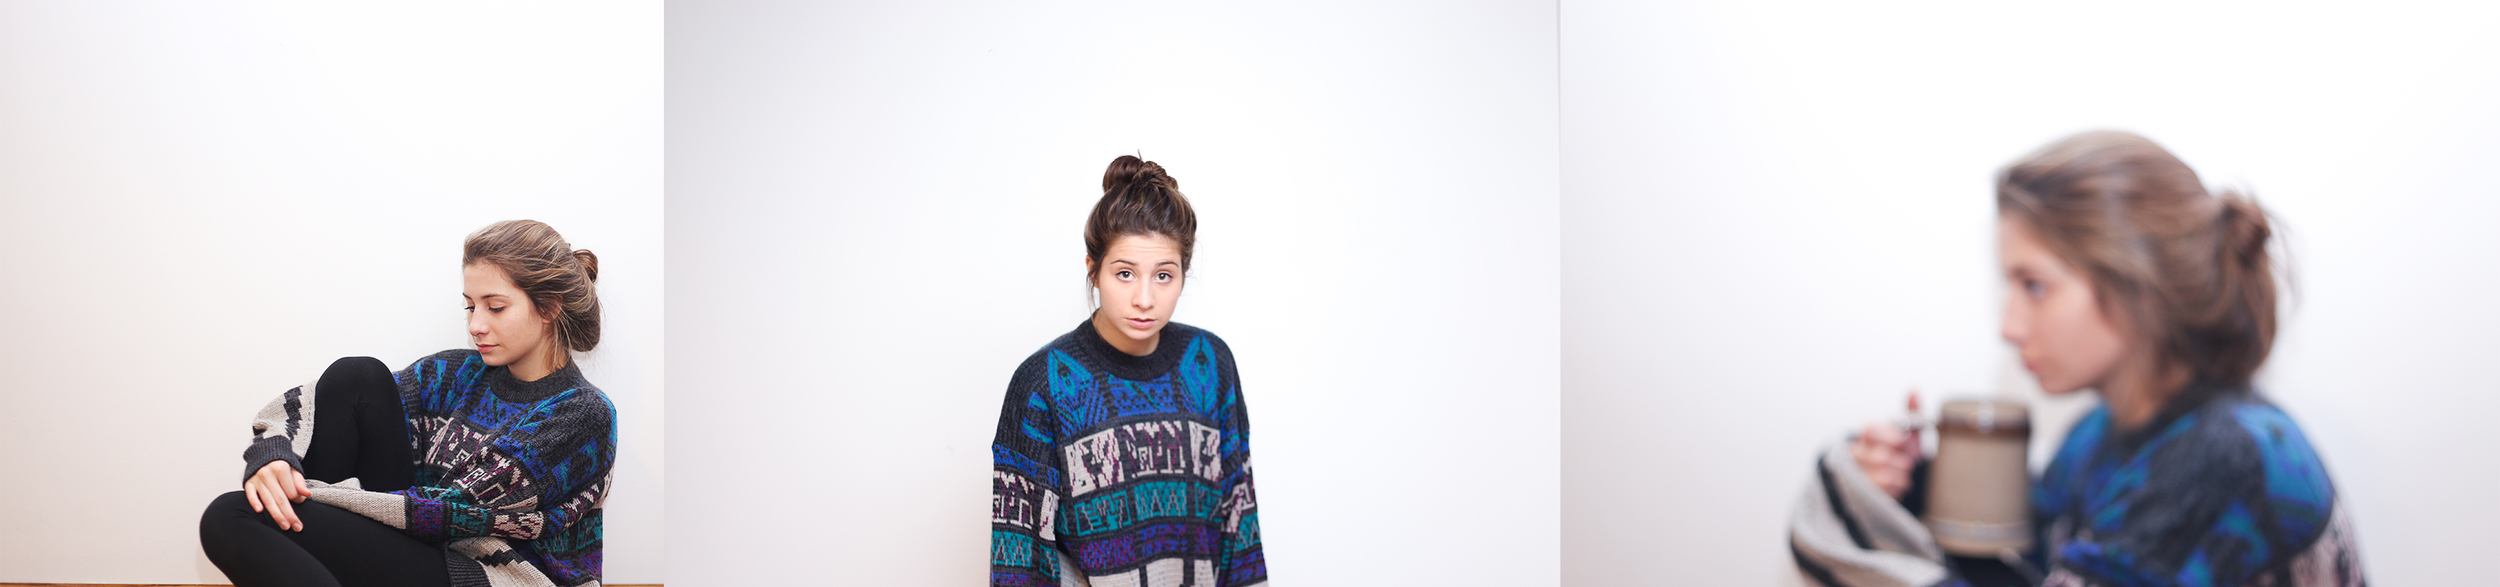 Yes, we both adore this sweater, the pattern is too funky and the material is just magical, this was a steal for just $4.